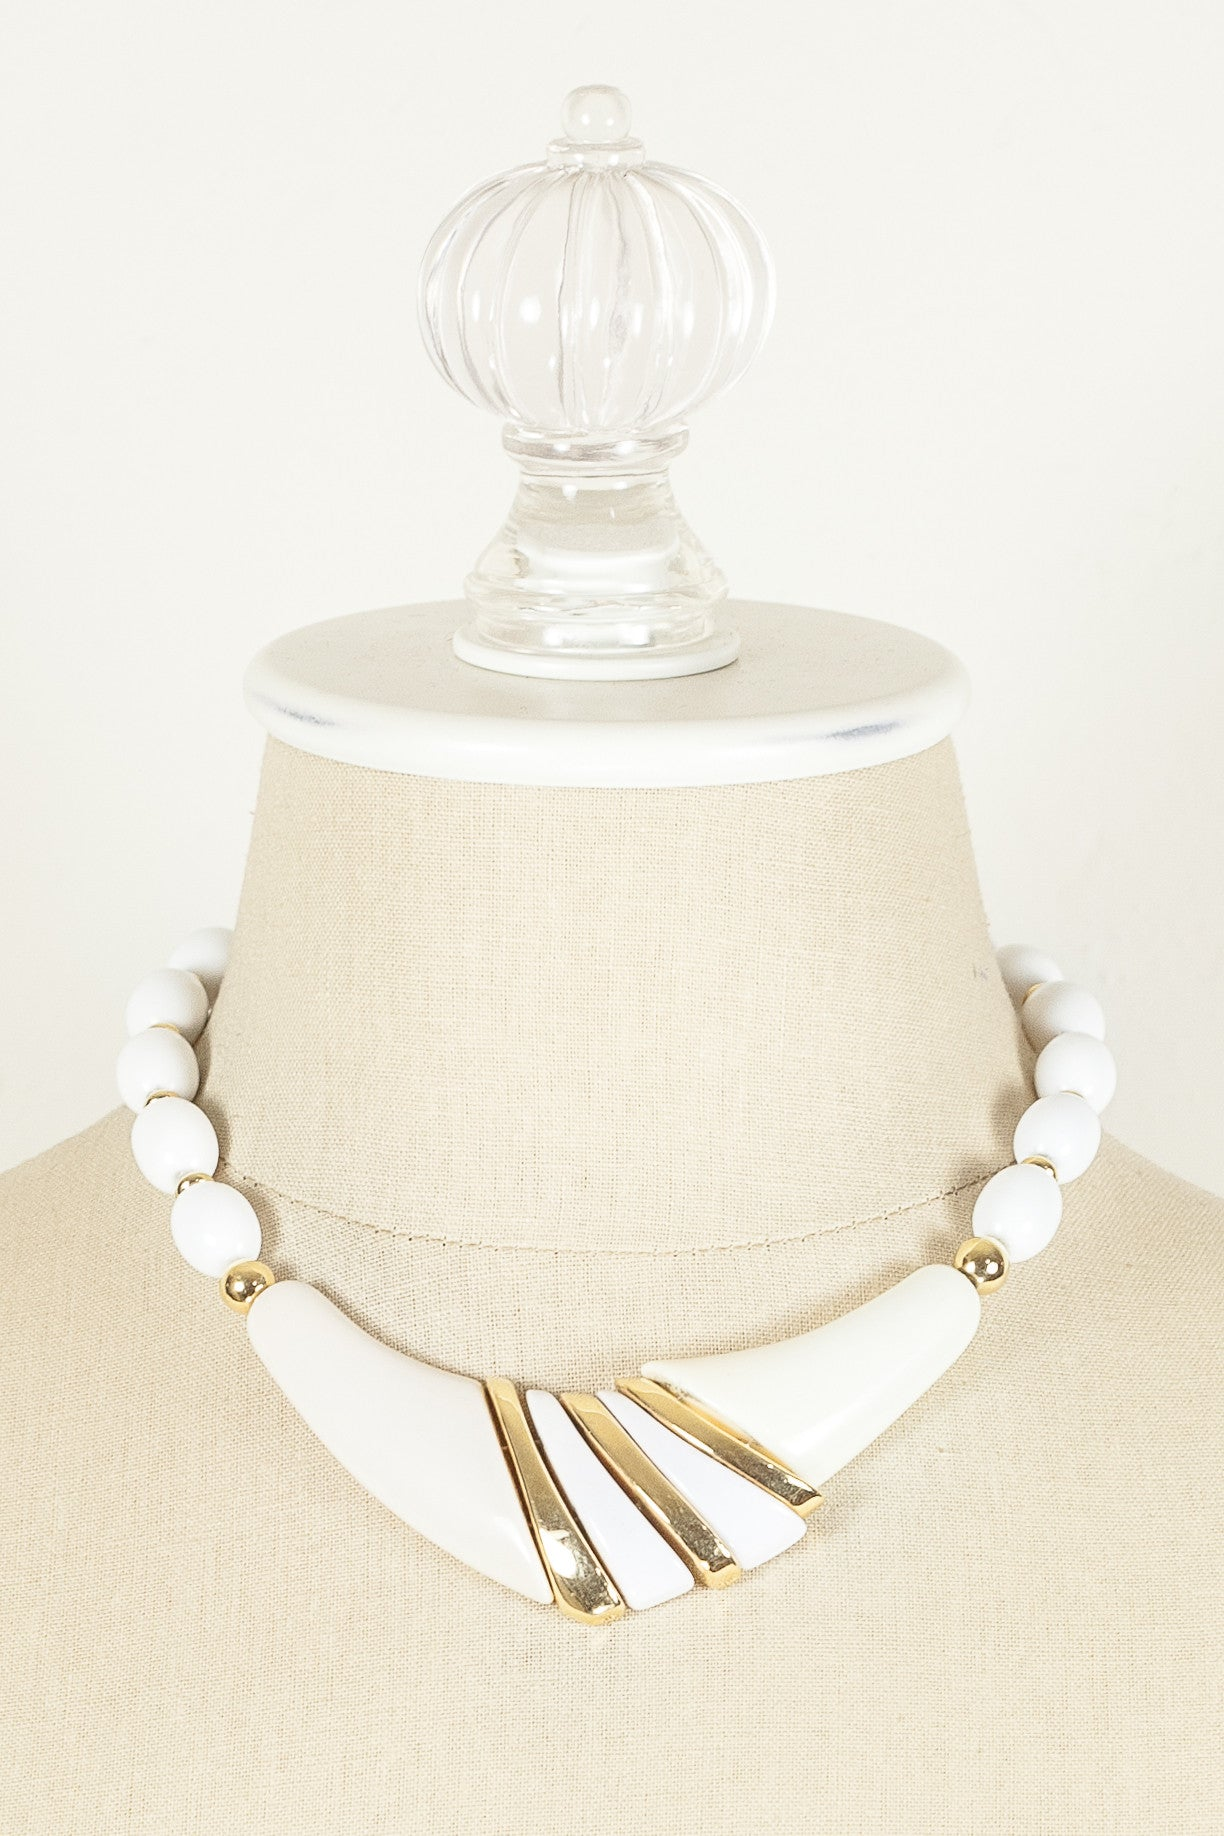 70's__Trifari__White Bead & Gold V Necklace